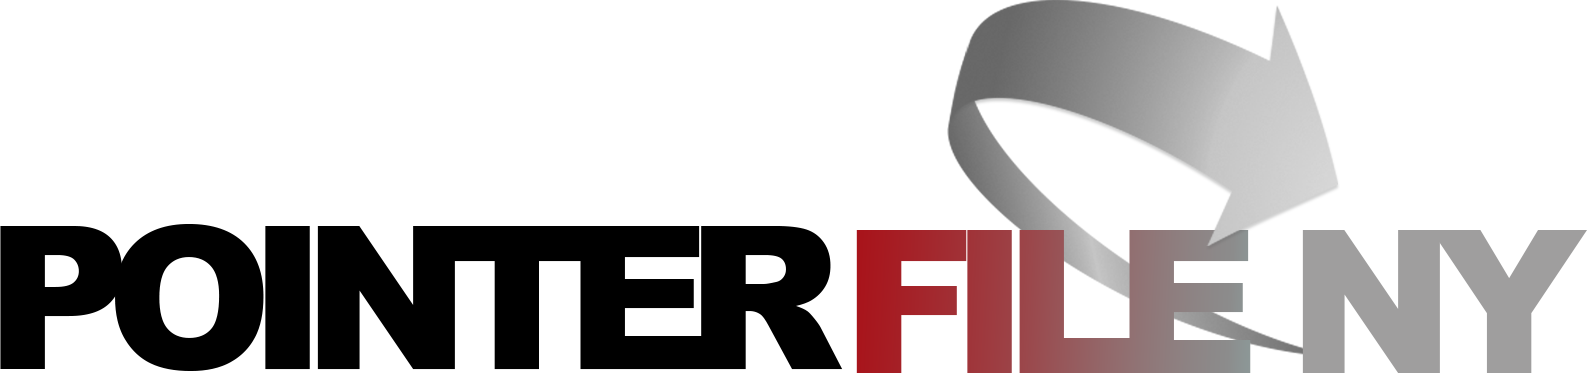 PointerFileLogo2.png